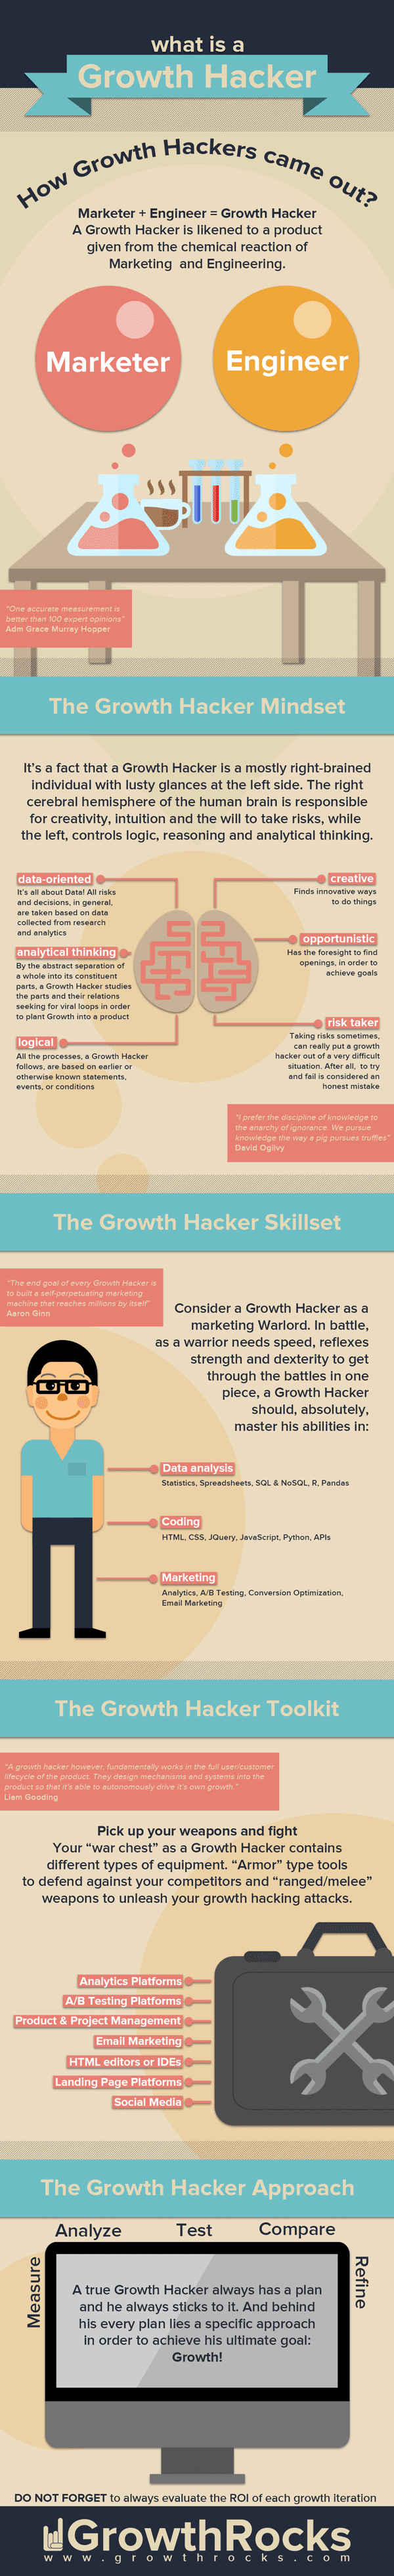 What Is A Growth Hacker? - #infographic #marketing